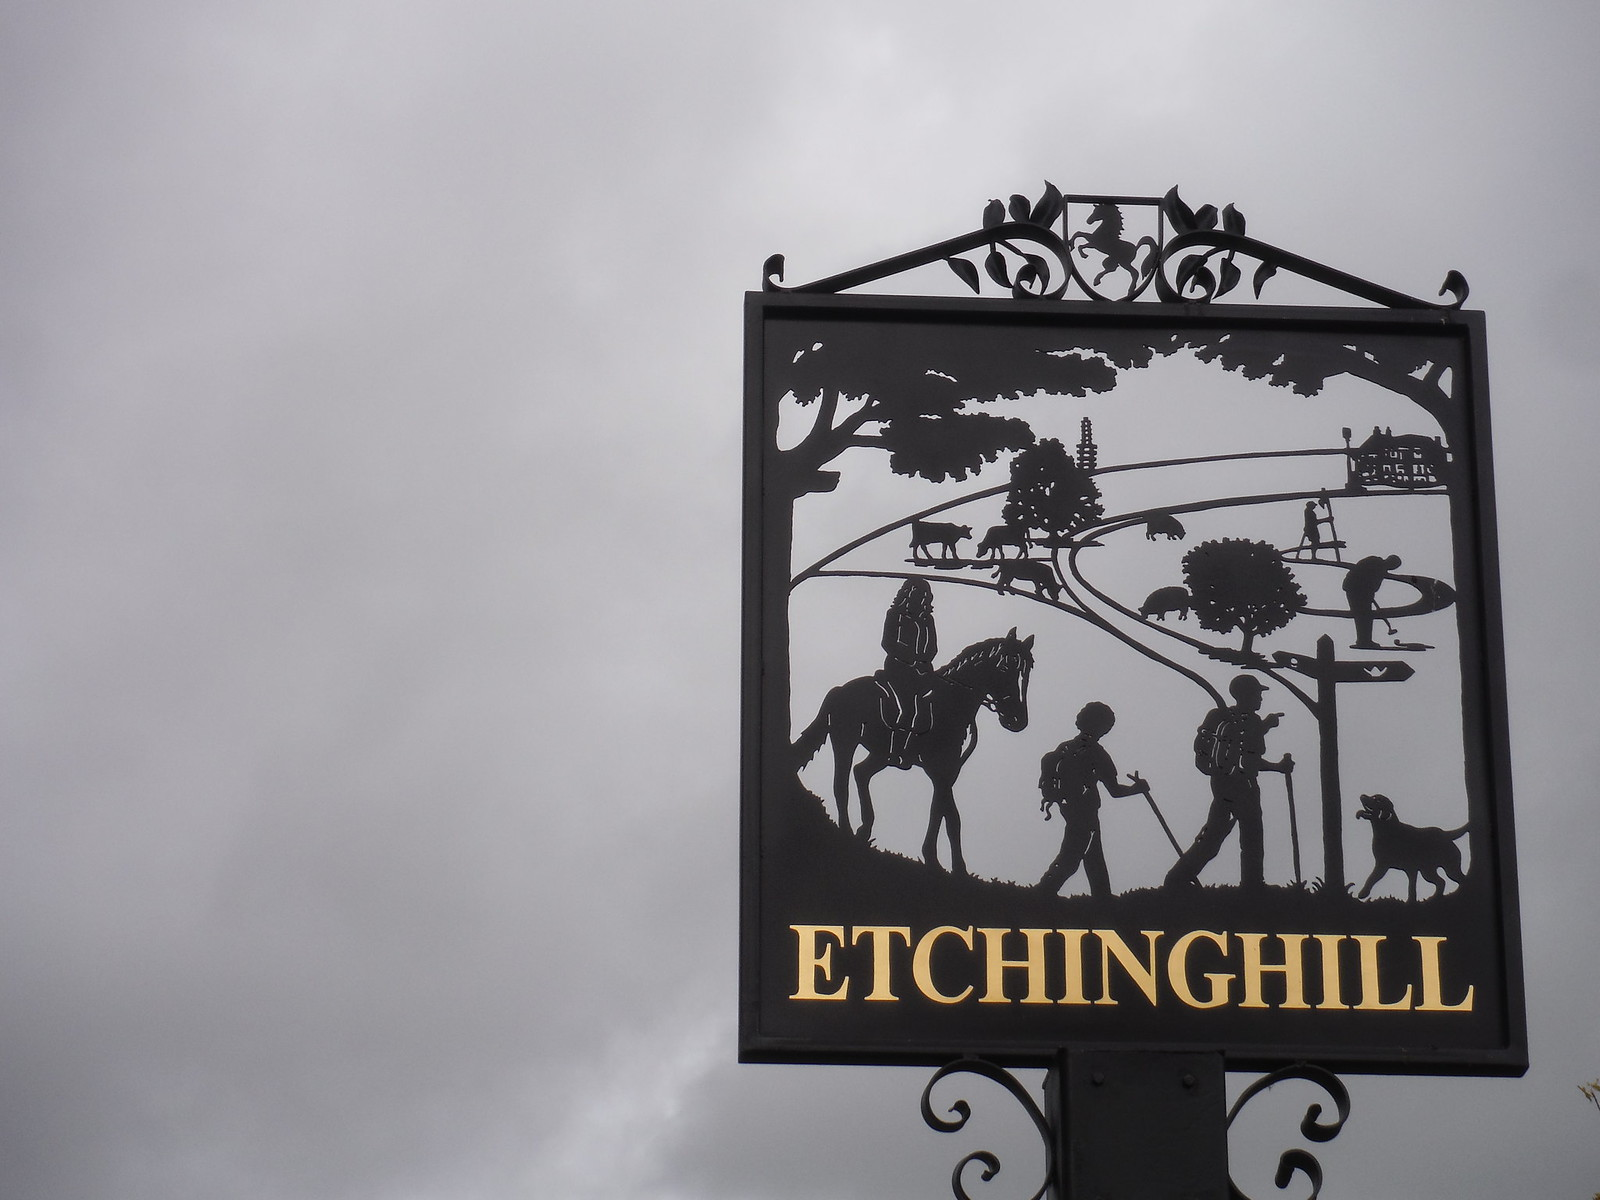 Etchinghill village sign SWC Walk 93 - North Downs Way: Sandling to Folkestone or Dover (Lunch Pub Diversion)